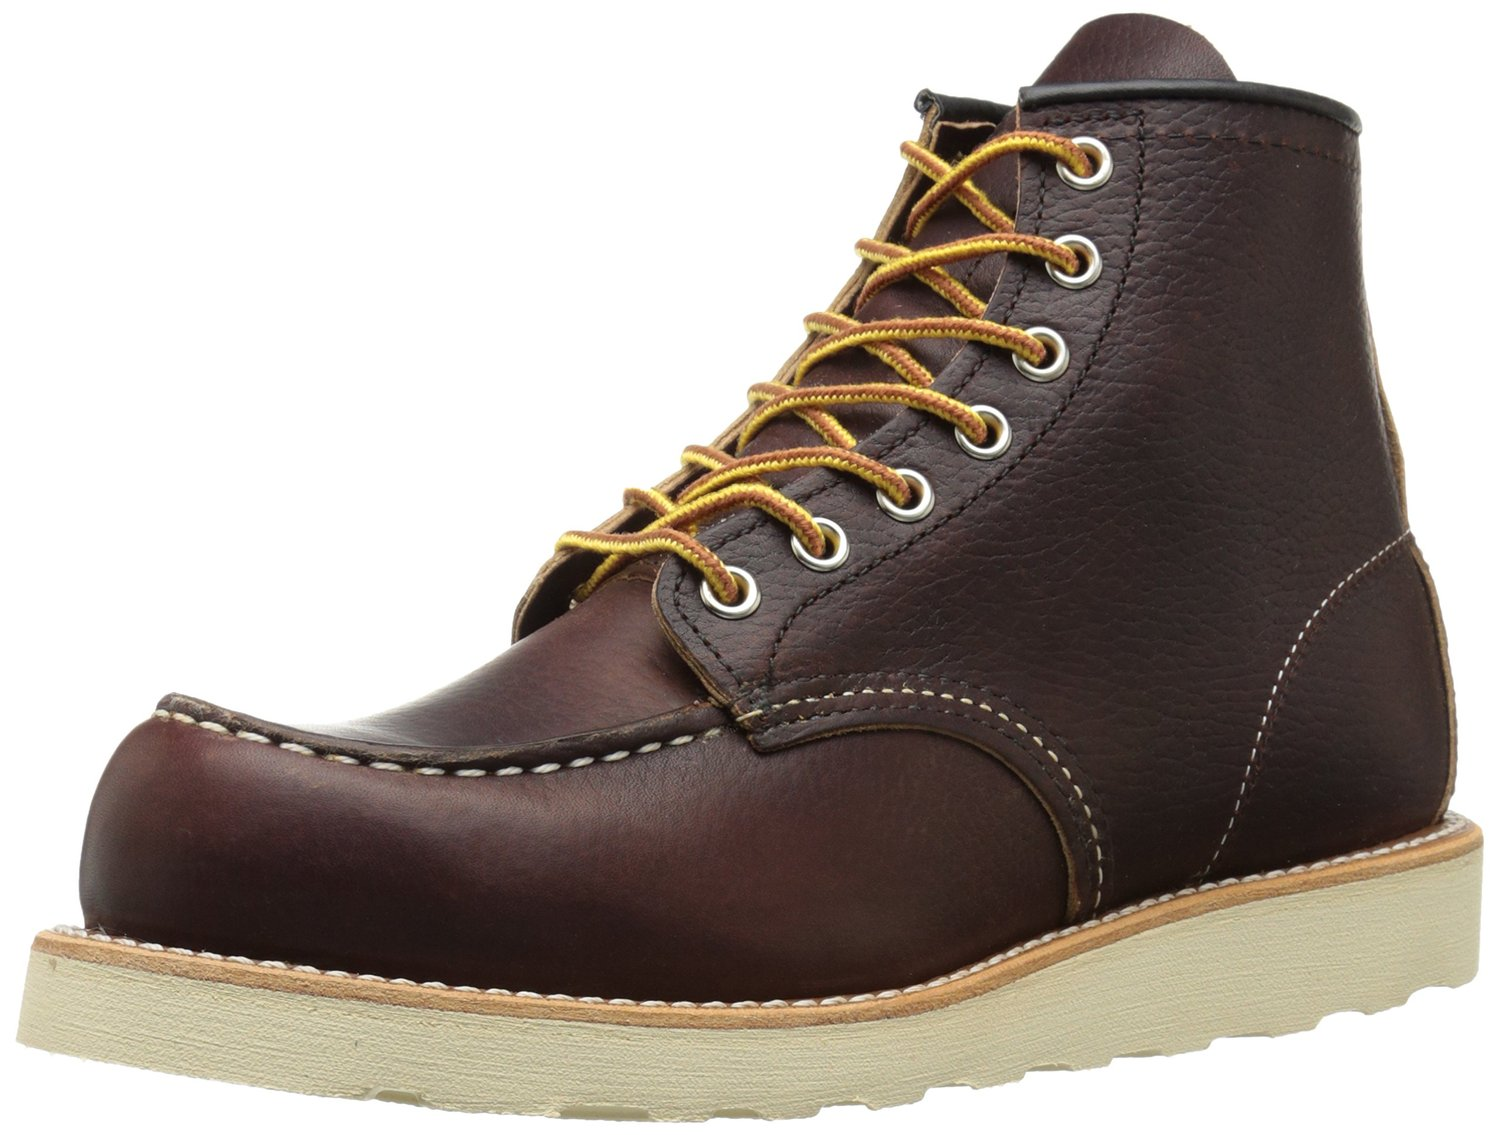 Where To Buy Red Wing Boots c0Ssp73J